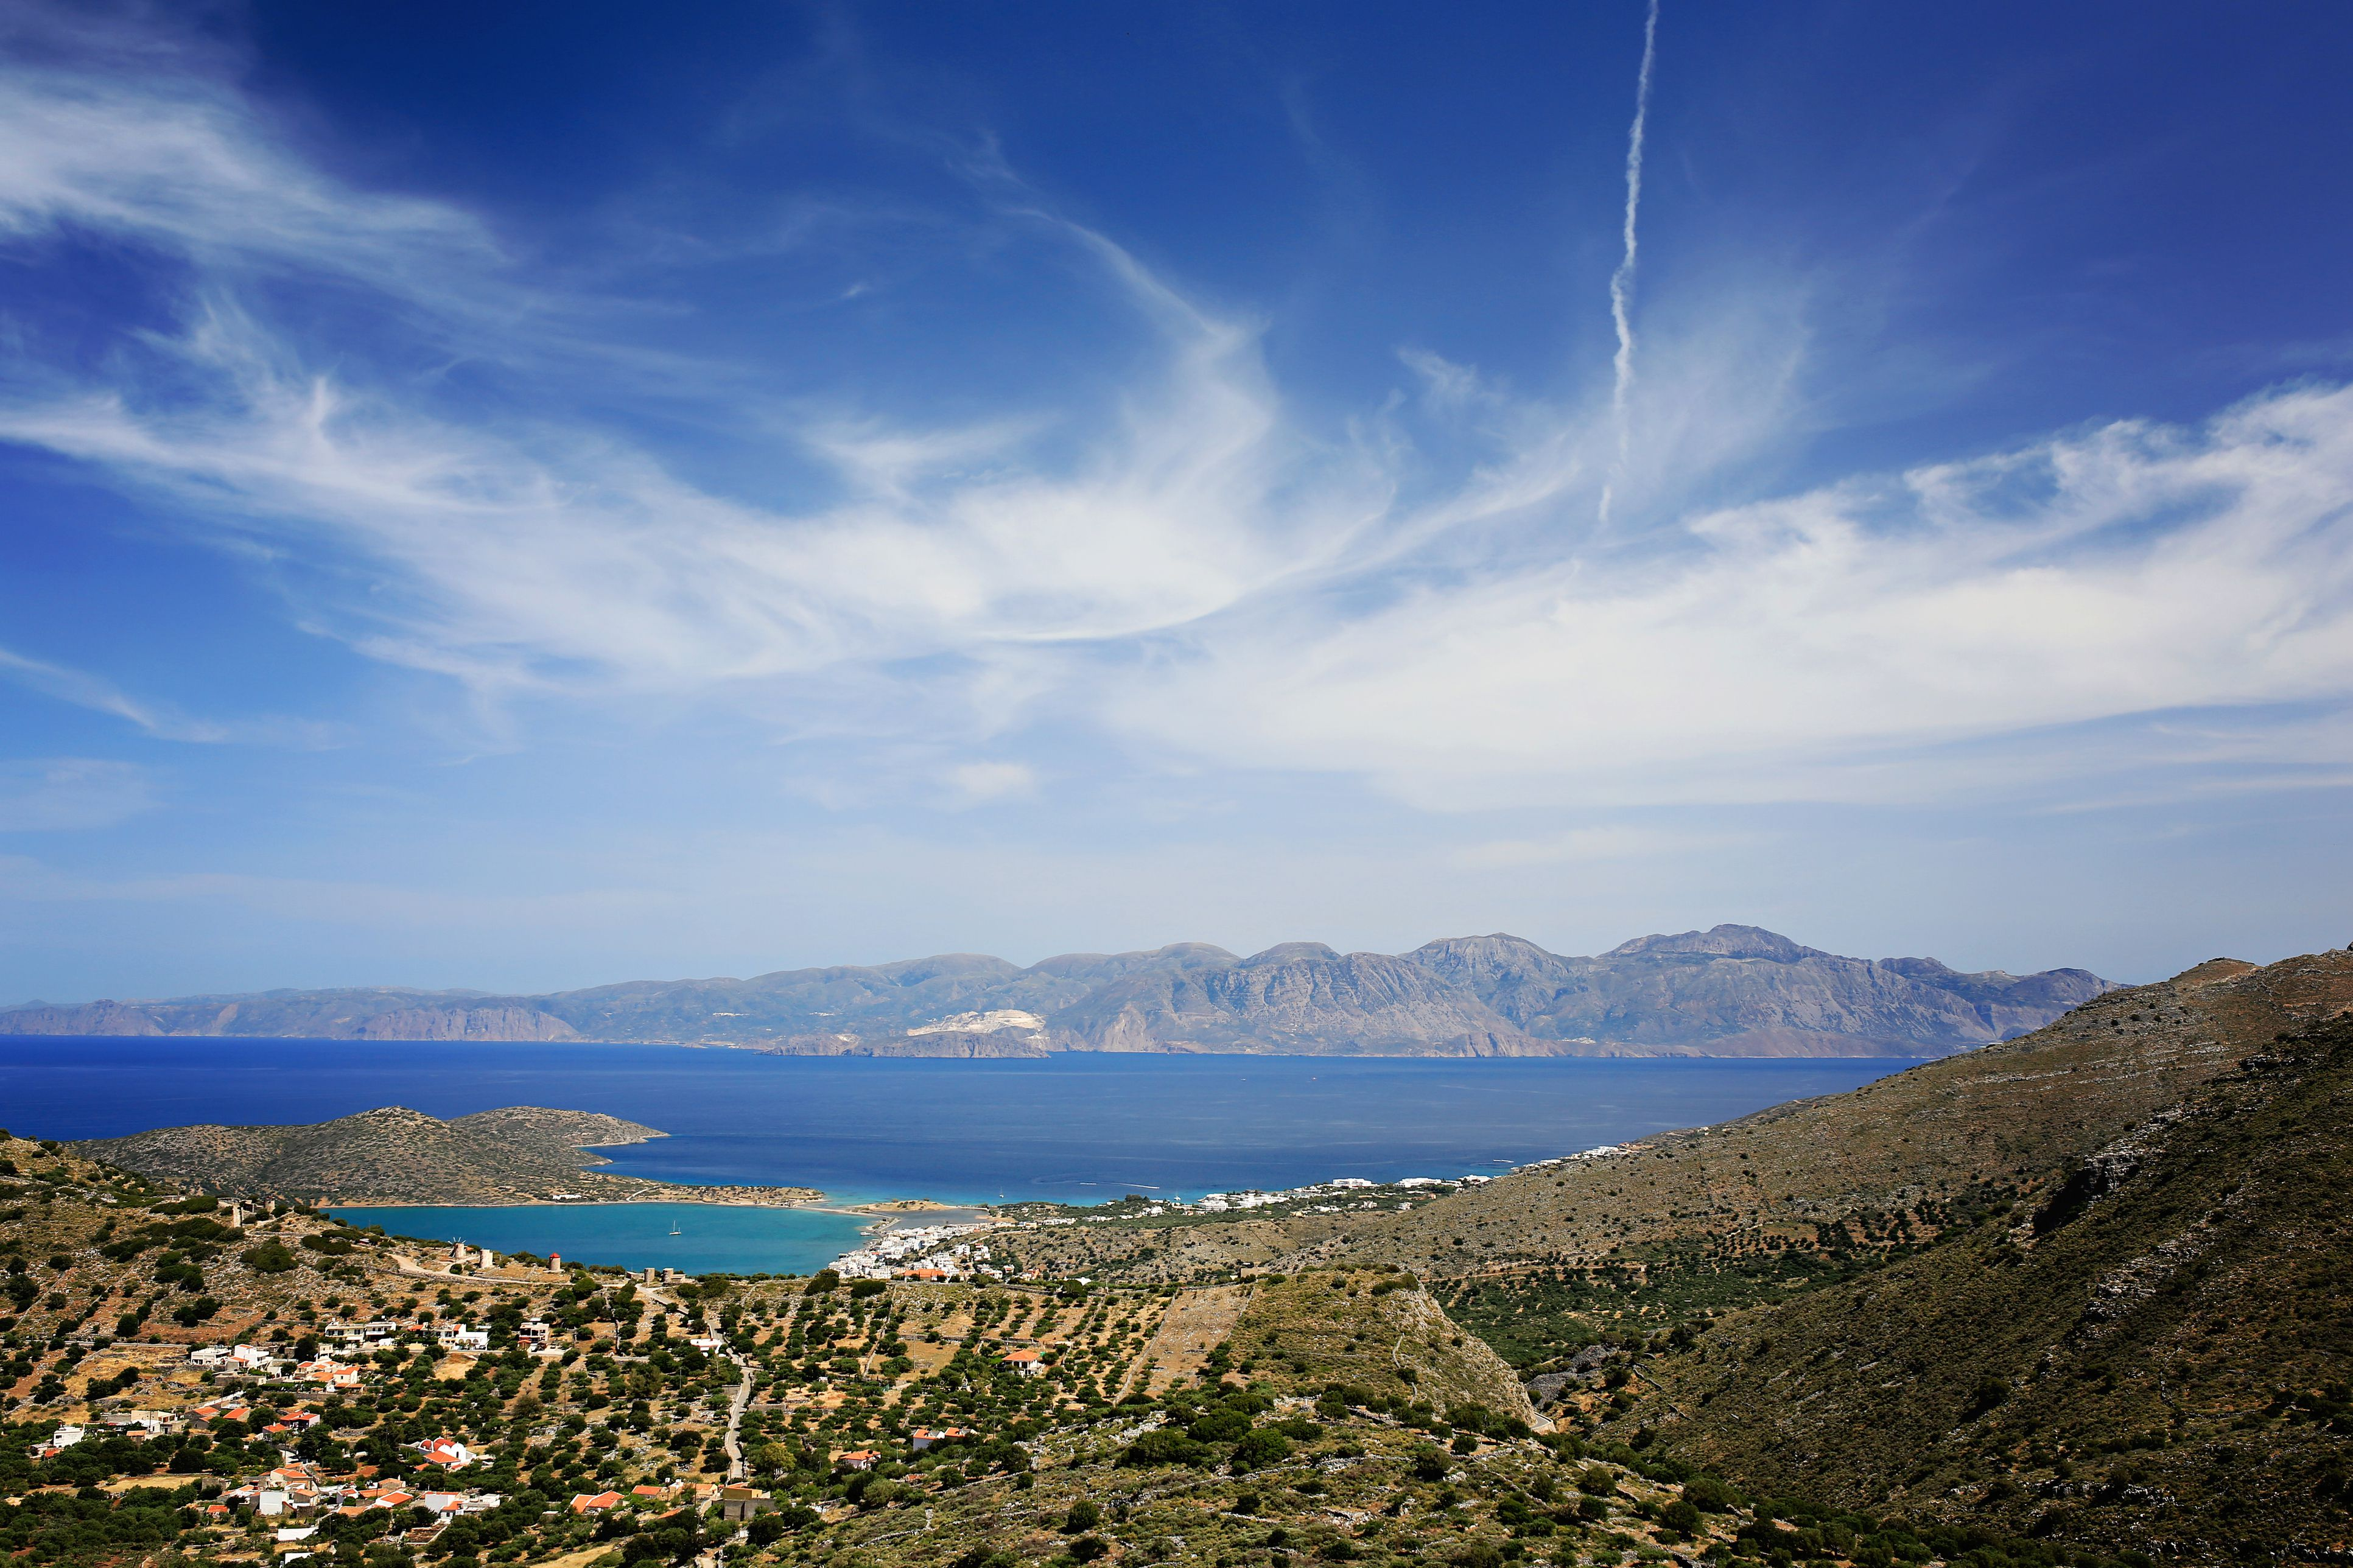 The panoramic view of the town of Elounda, Crete